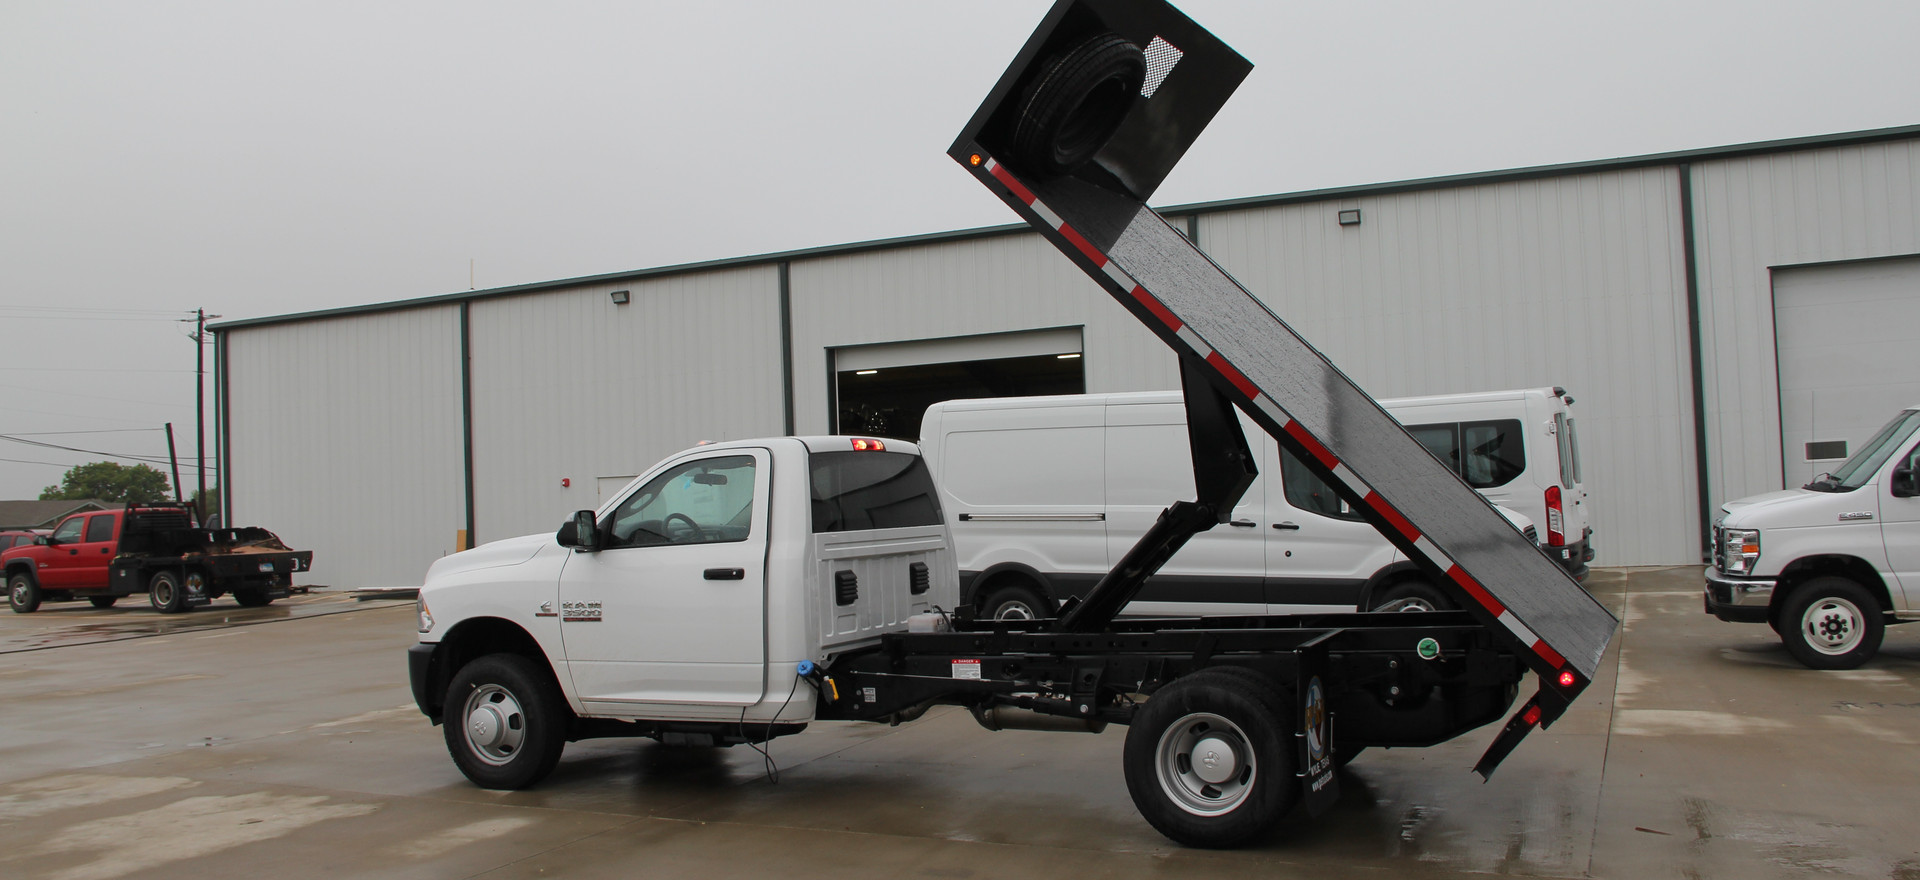 Flatbed customized with Hoist Dumpbed.JP